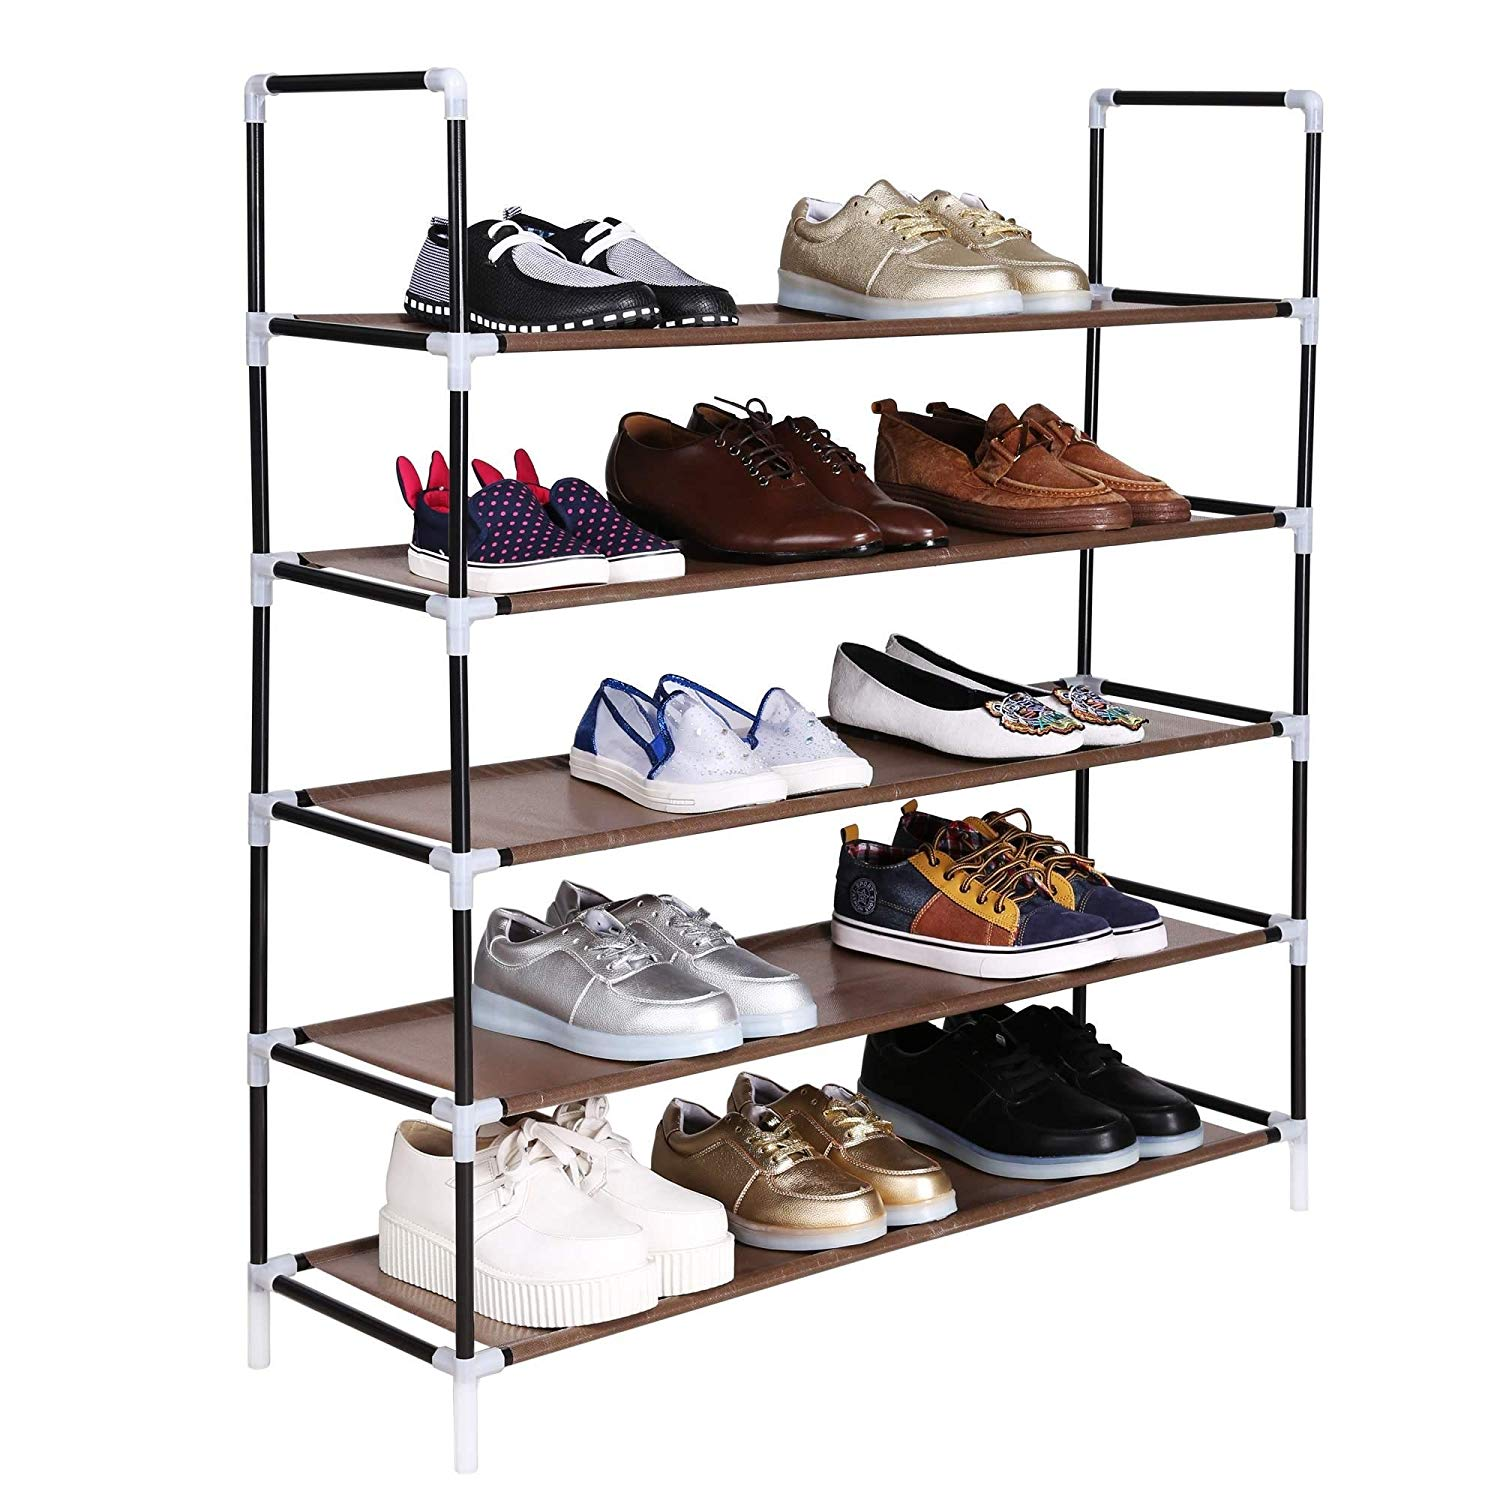 Benlet Adjustable DIY 5-Tier 20 Pairs Free-Standing Shoe Shelf Tower, Easy Assembled Non-Woven Fabric Home Space Saving Shoe Storage Organizer Cabinet (5-Tier, Brown)